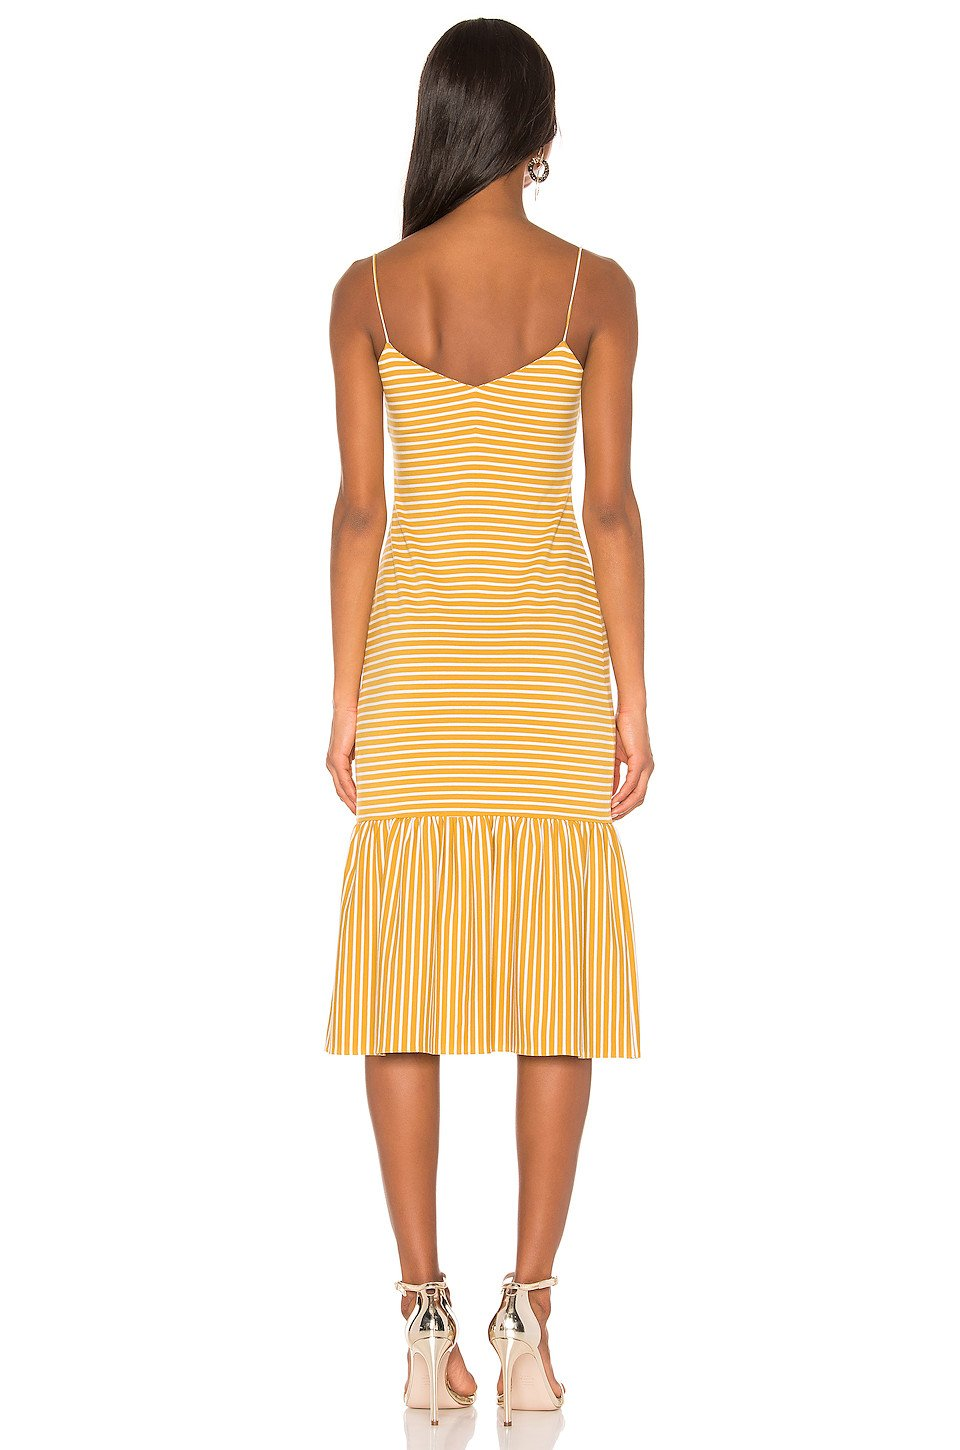 Doris Dress in Mustard